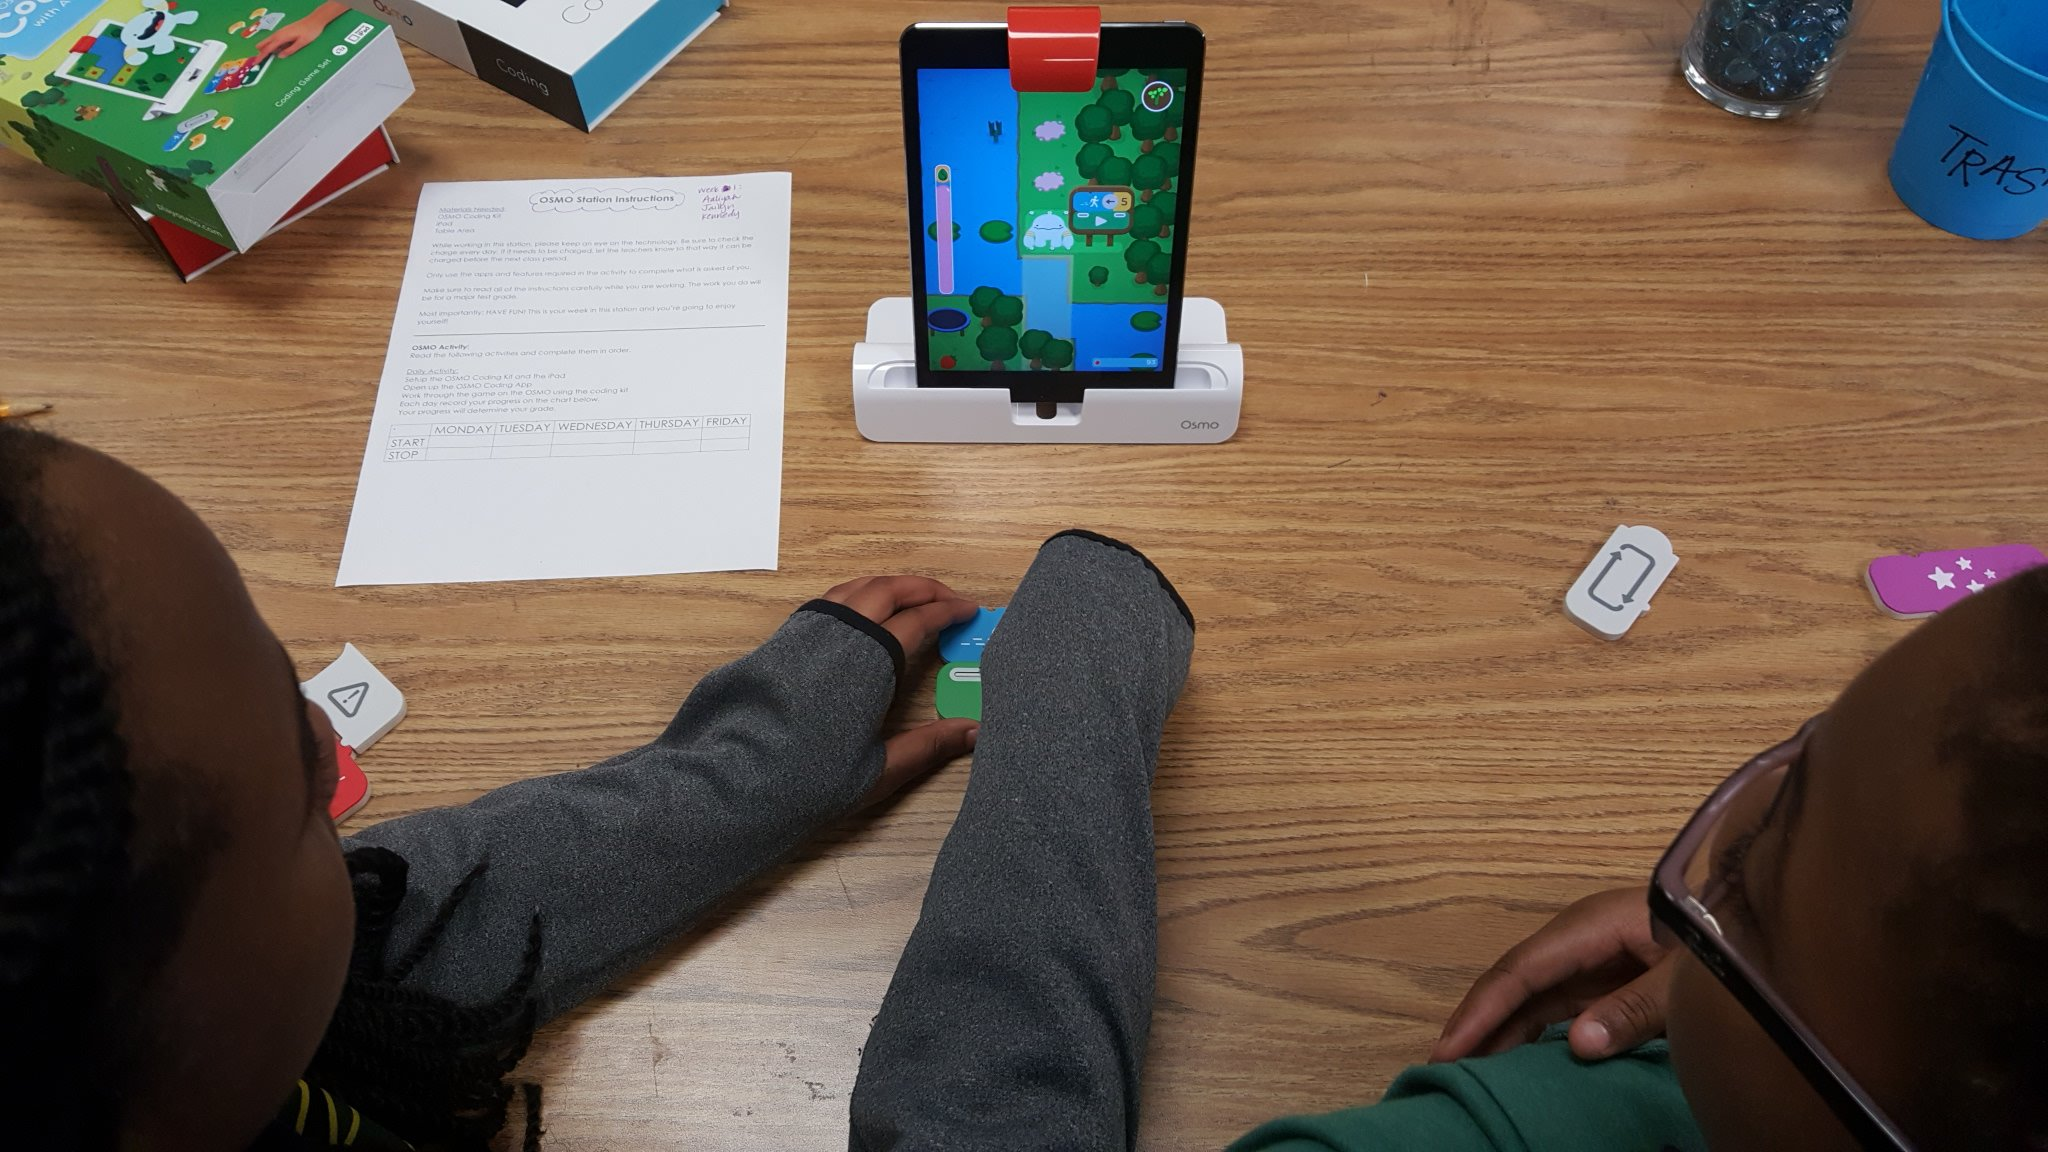 Ms. Mendenhall's technology and robotics classes use the OSMO to practice their coding skills. #pamsproud #DLDay @Drtamssen https://t.co/NxXL5WAZgz